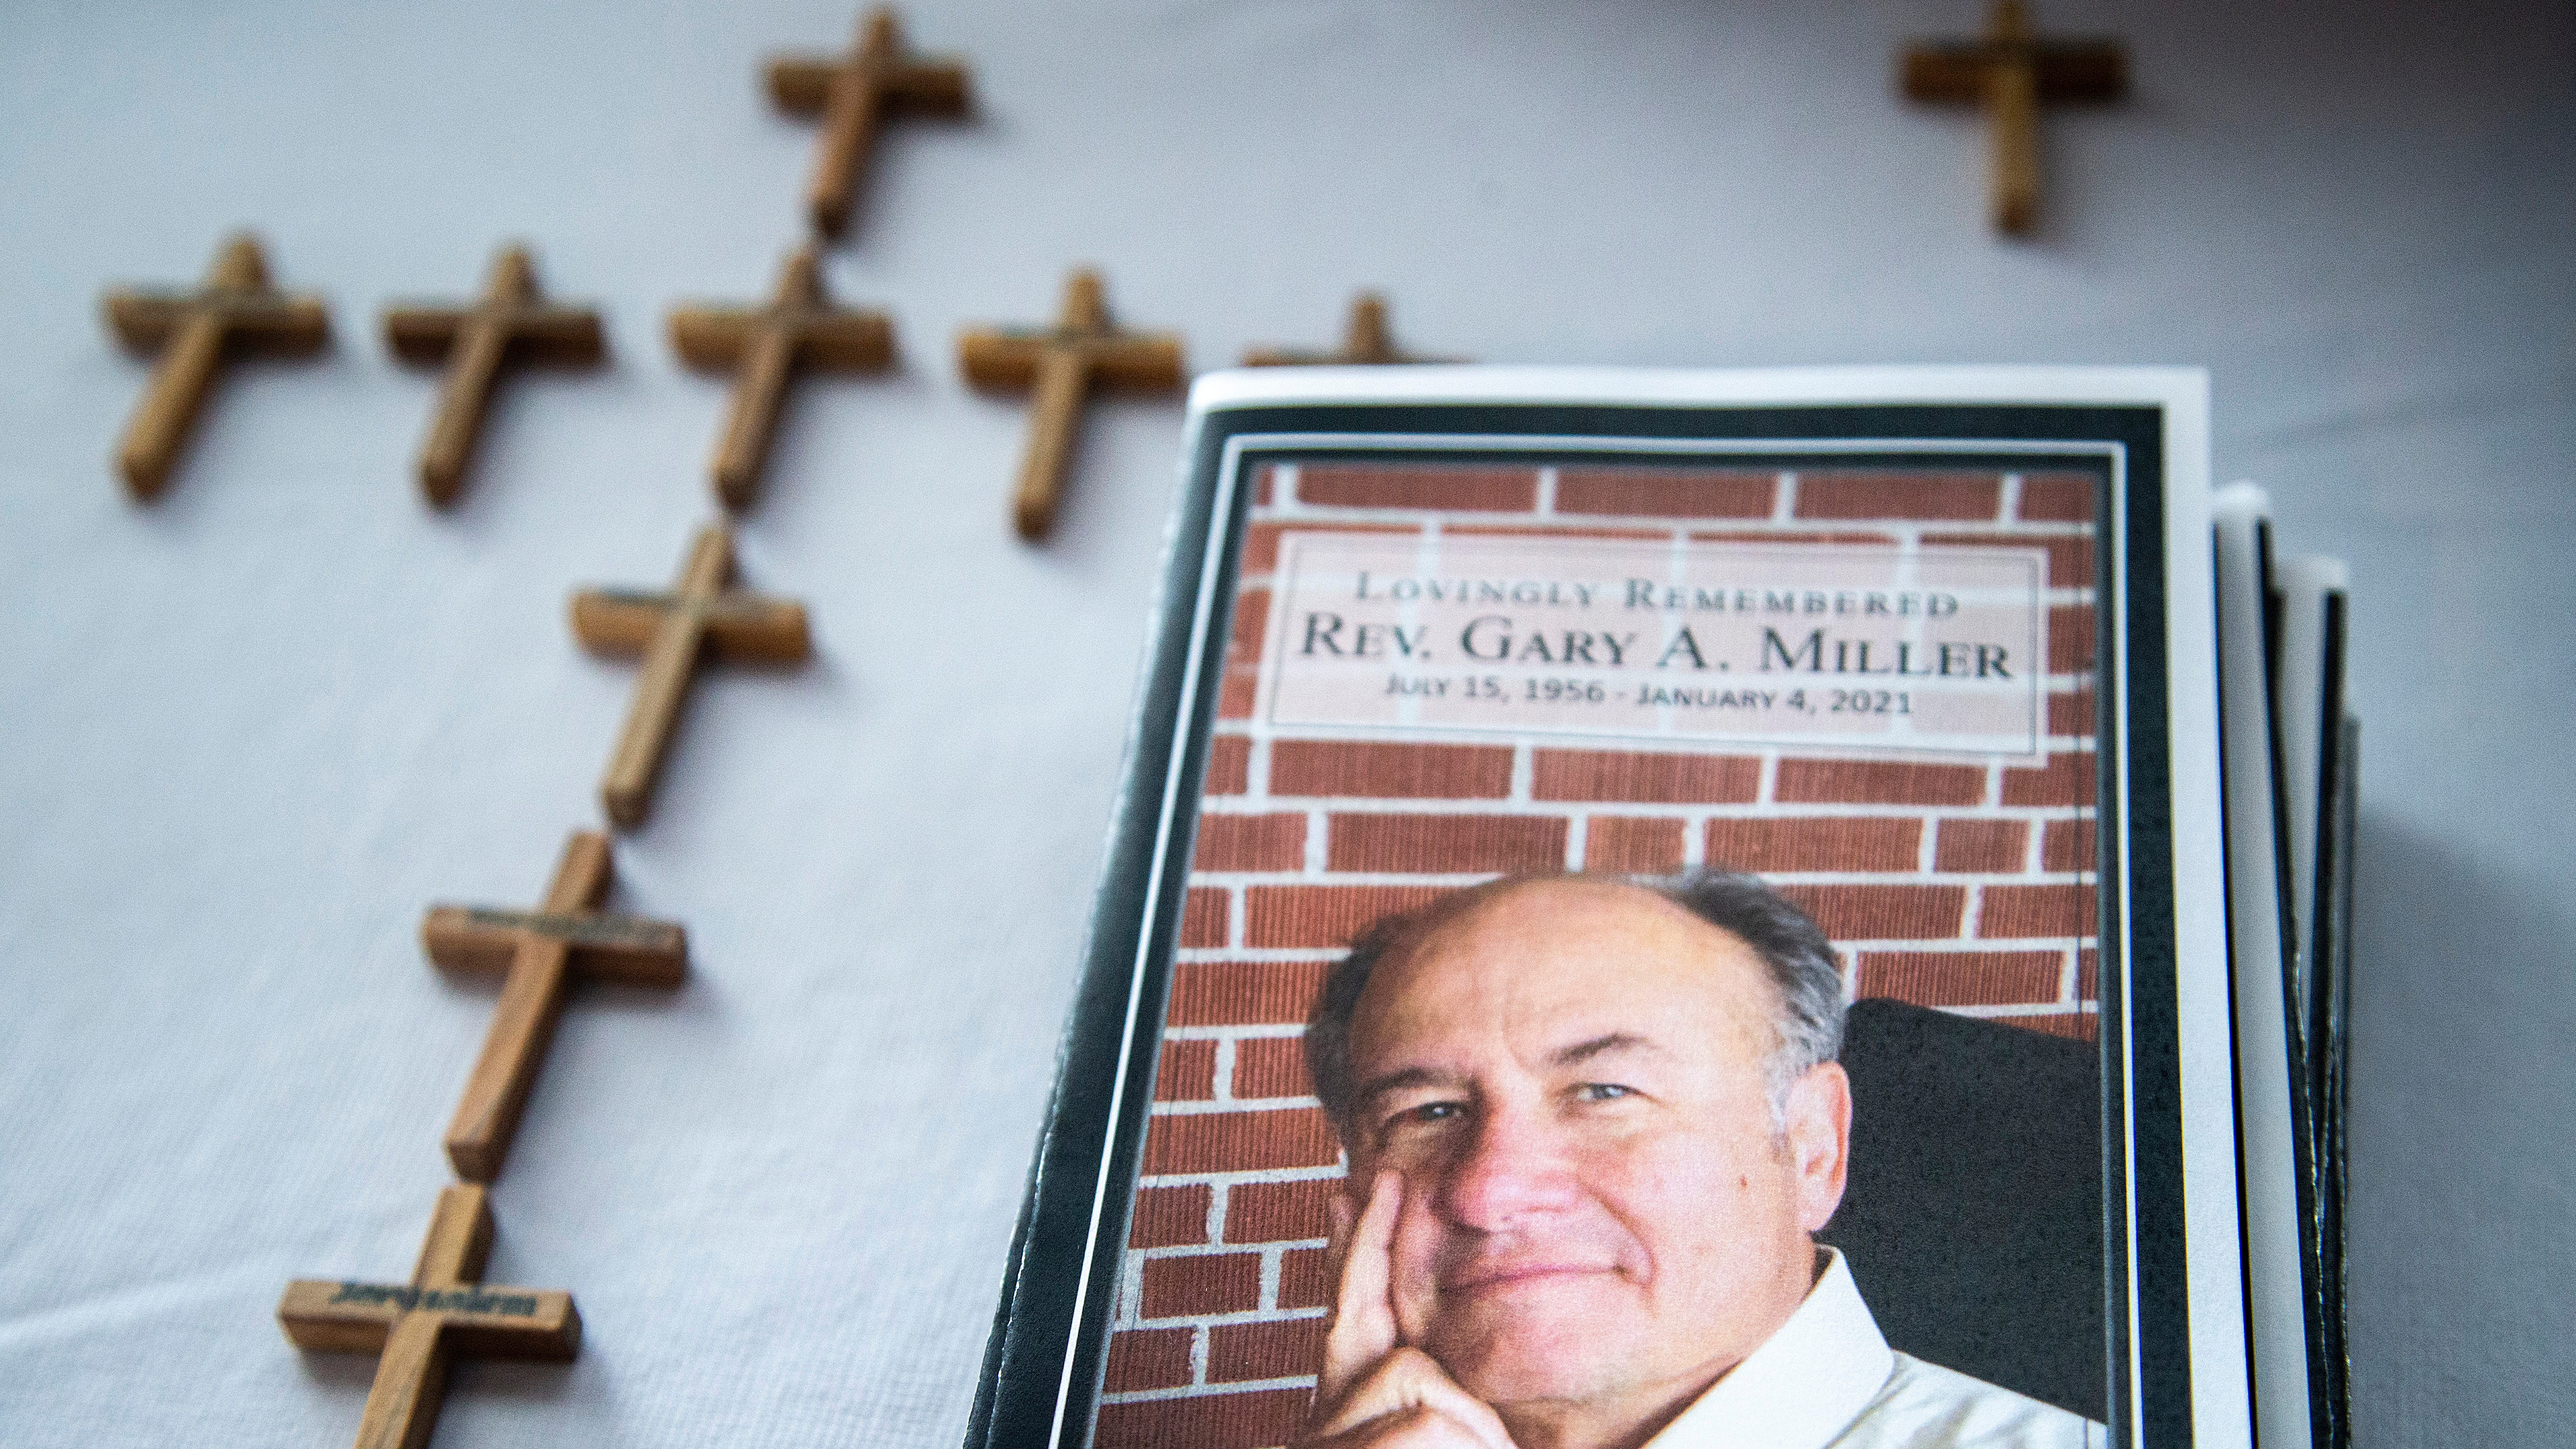 Rev. Gary Miller, pastor for 3 decades, dies of COVID-19